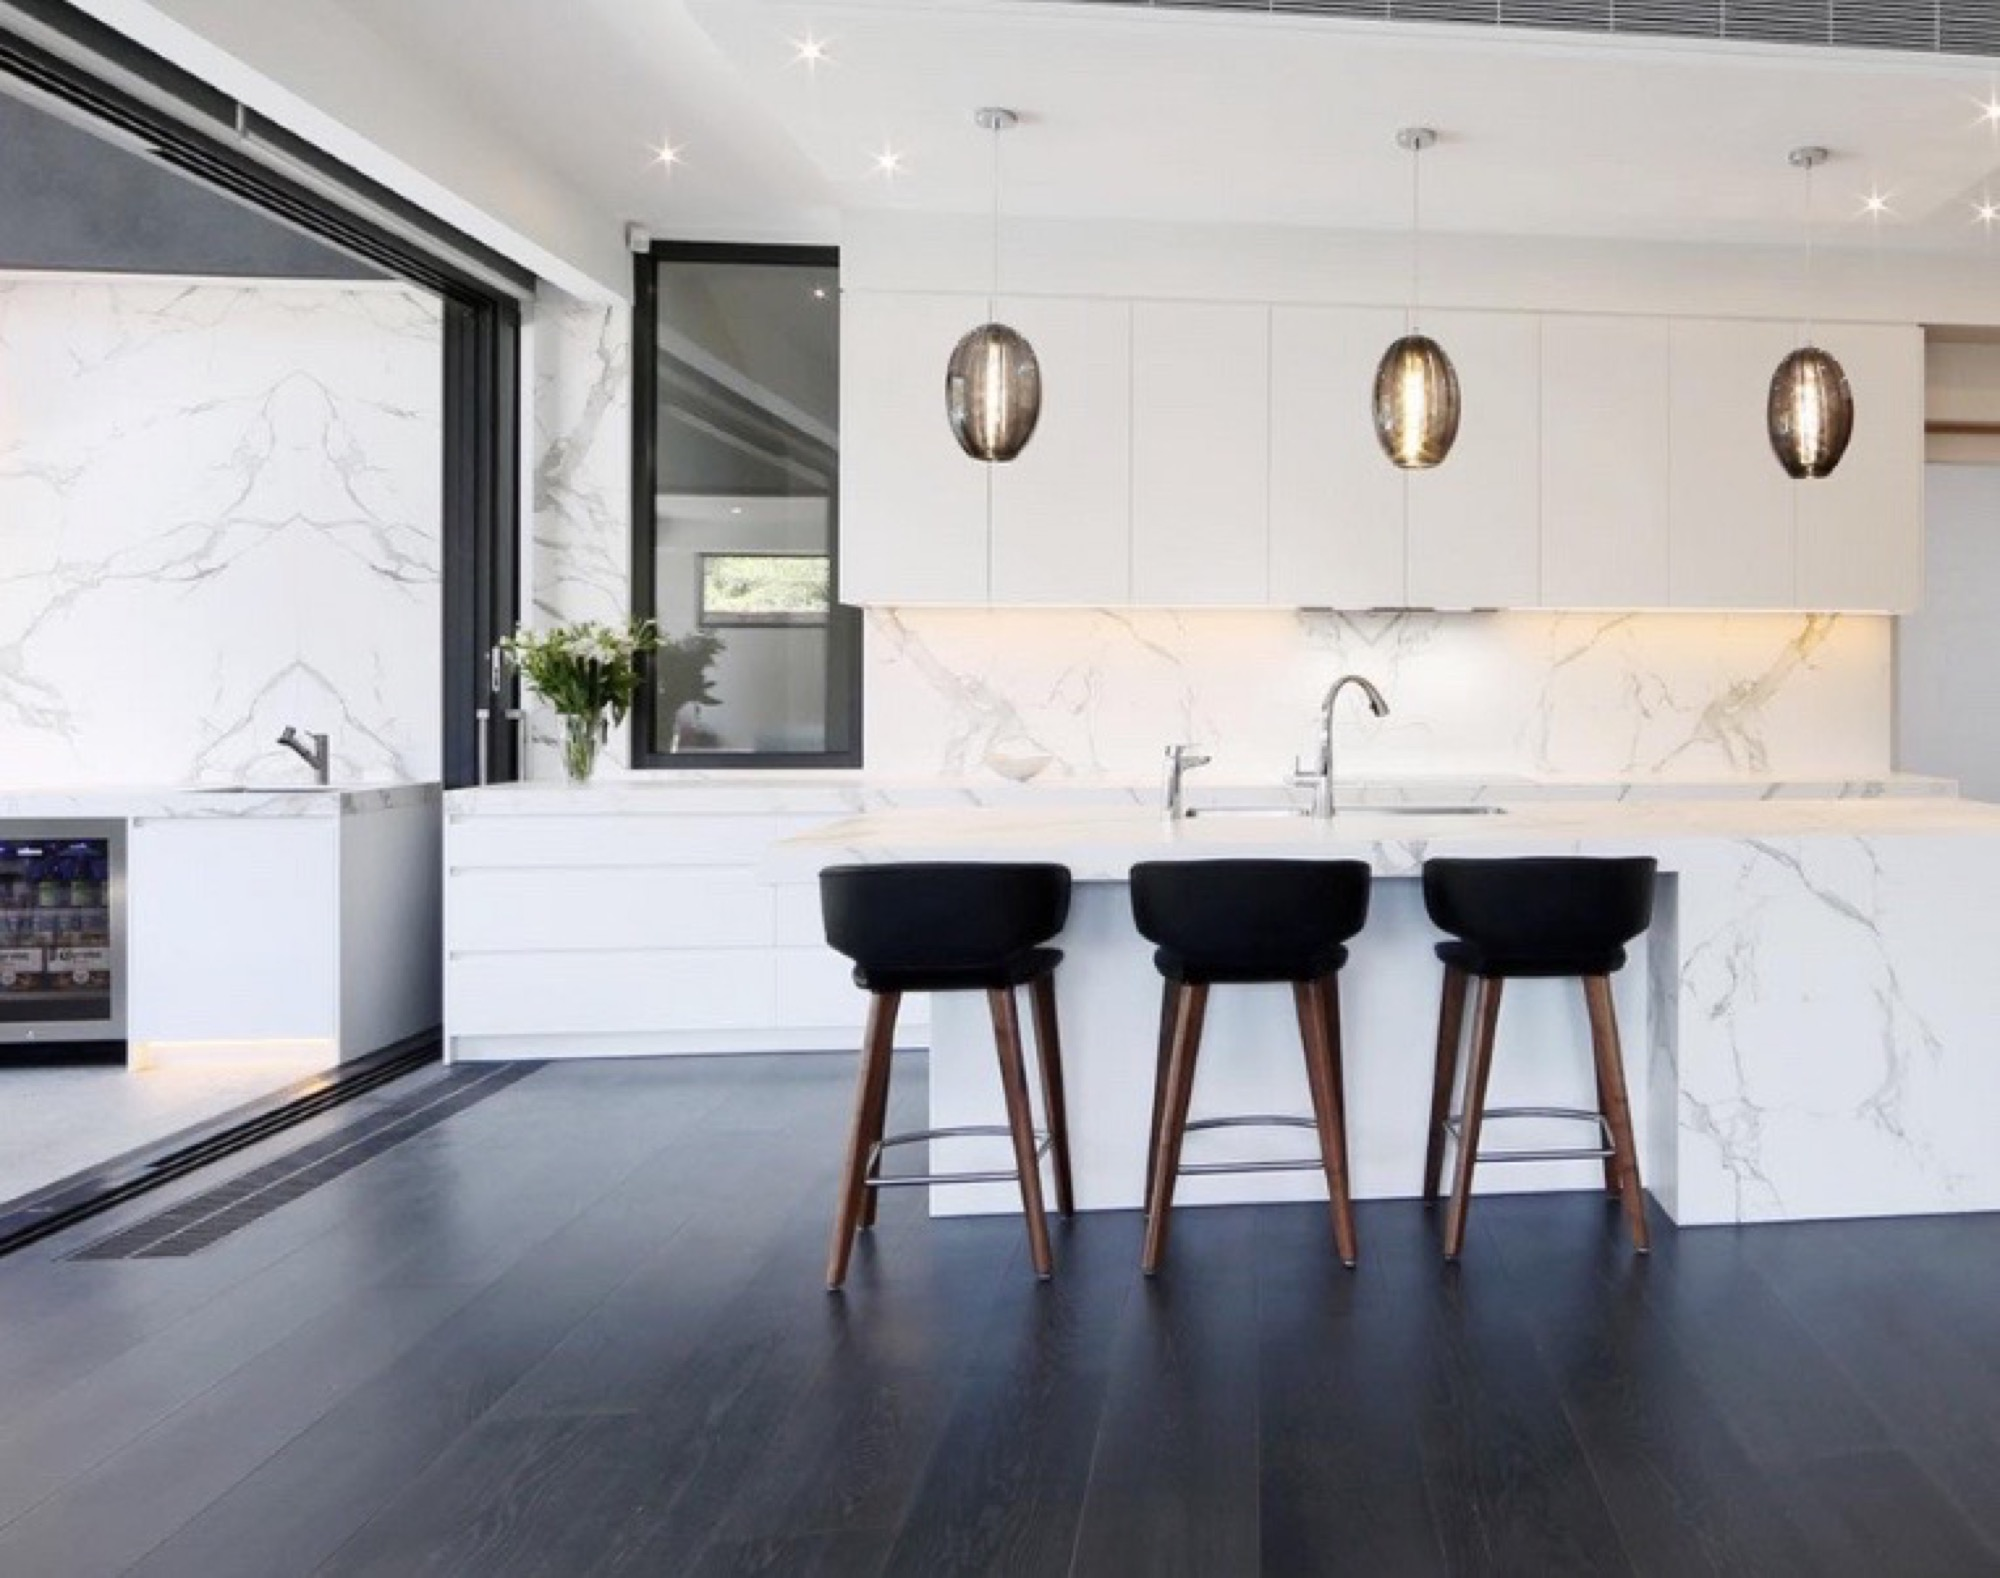 Kitchen Designs - Leigh Woollatt - Quality, Functionality, Perfection